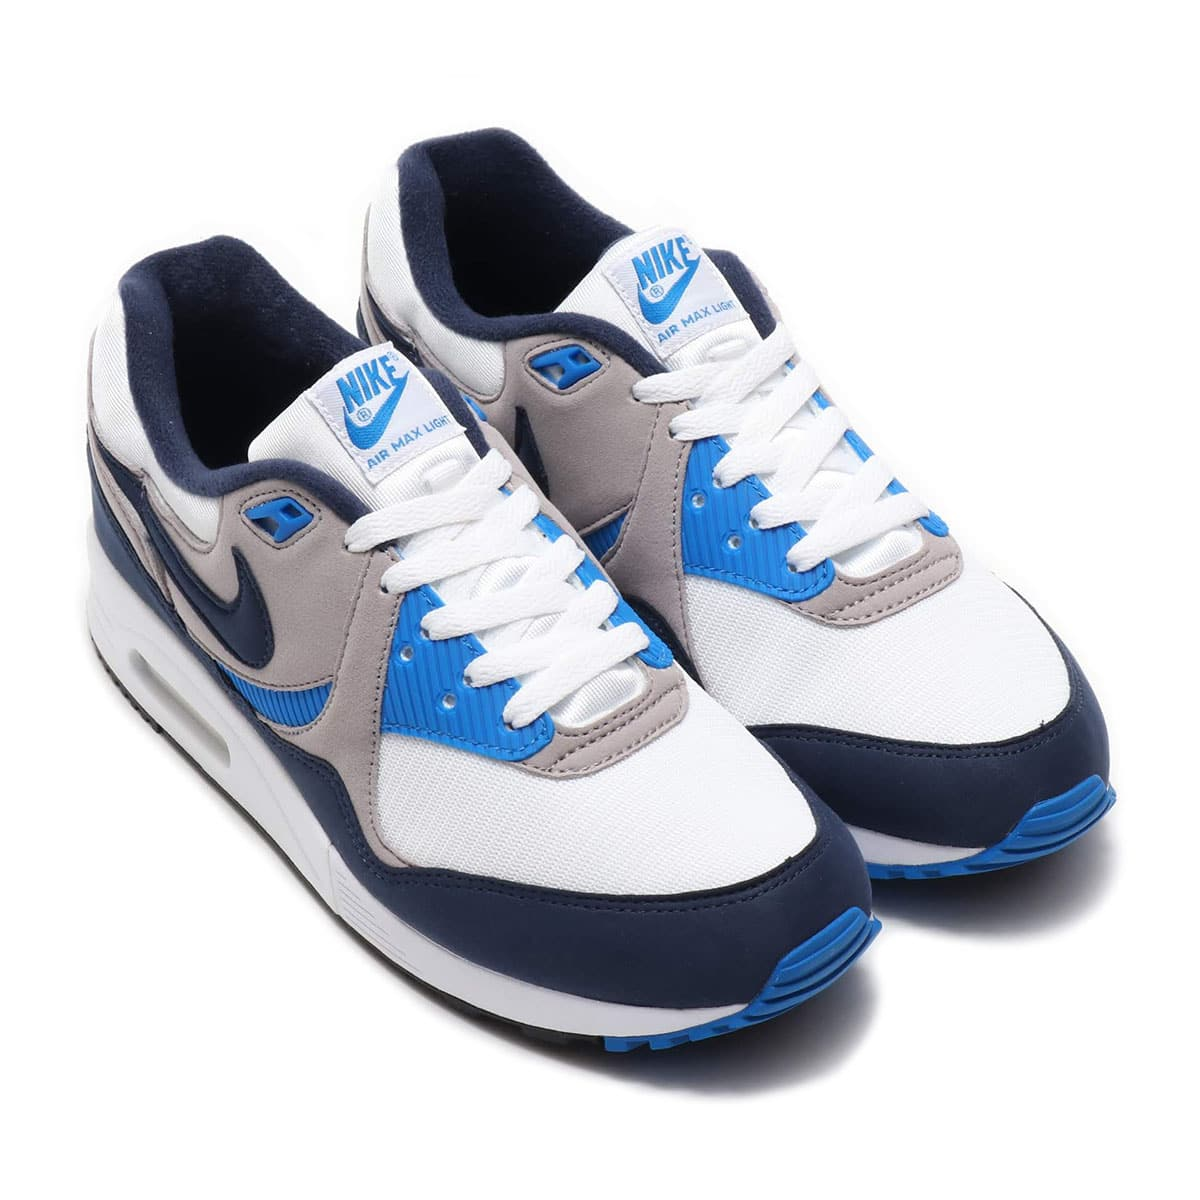 NIKE AIR MAX LIGHT WHITE/OBSIDIAN-ATMOSPHERE GREY 19SP-I_photo_large